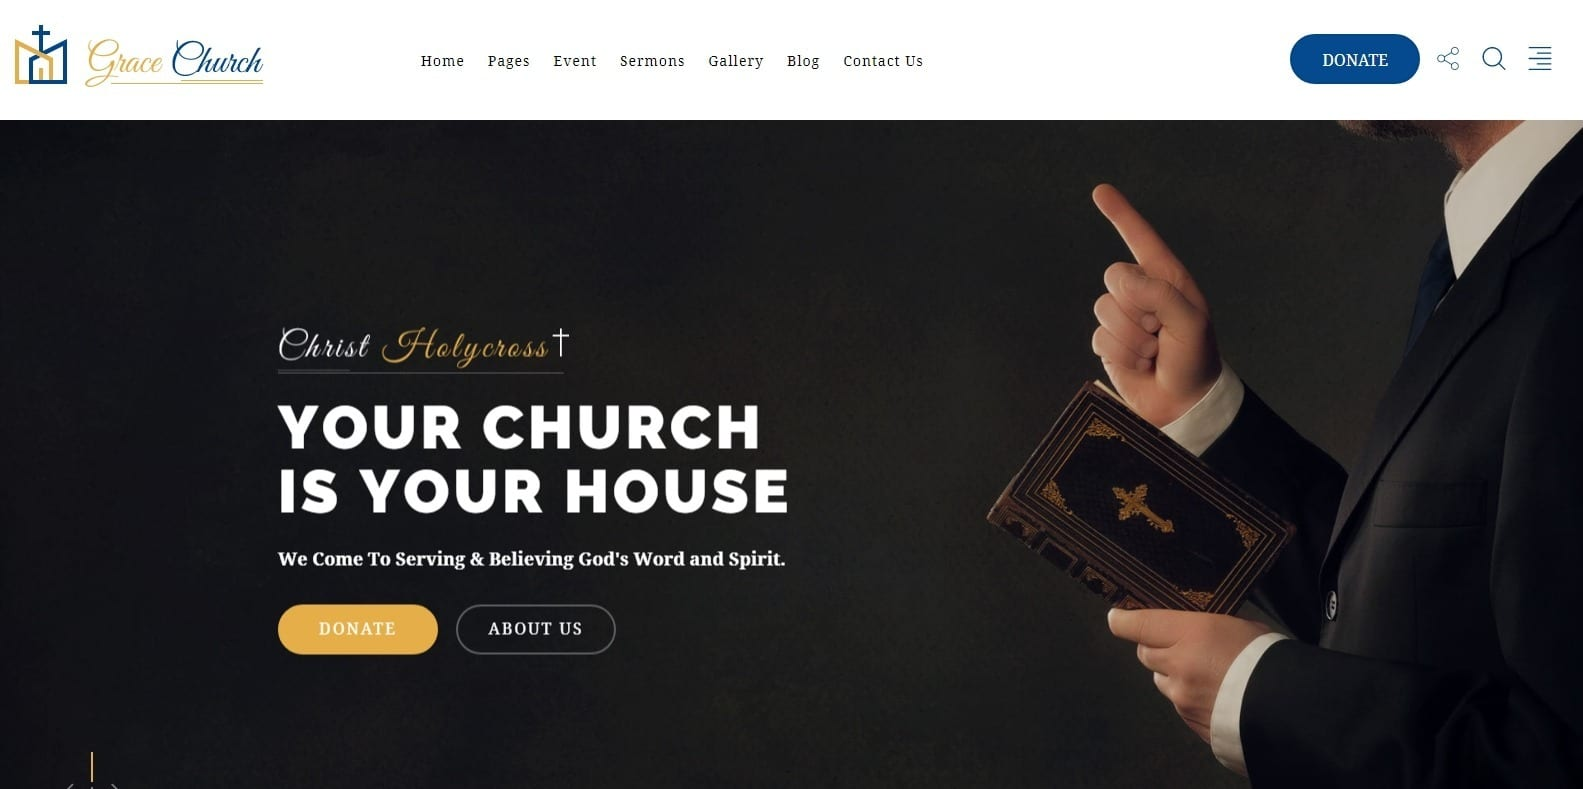 grace-church-website-template